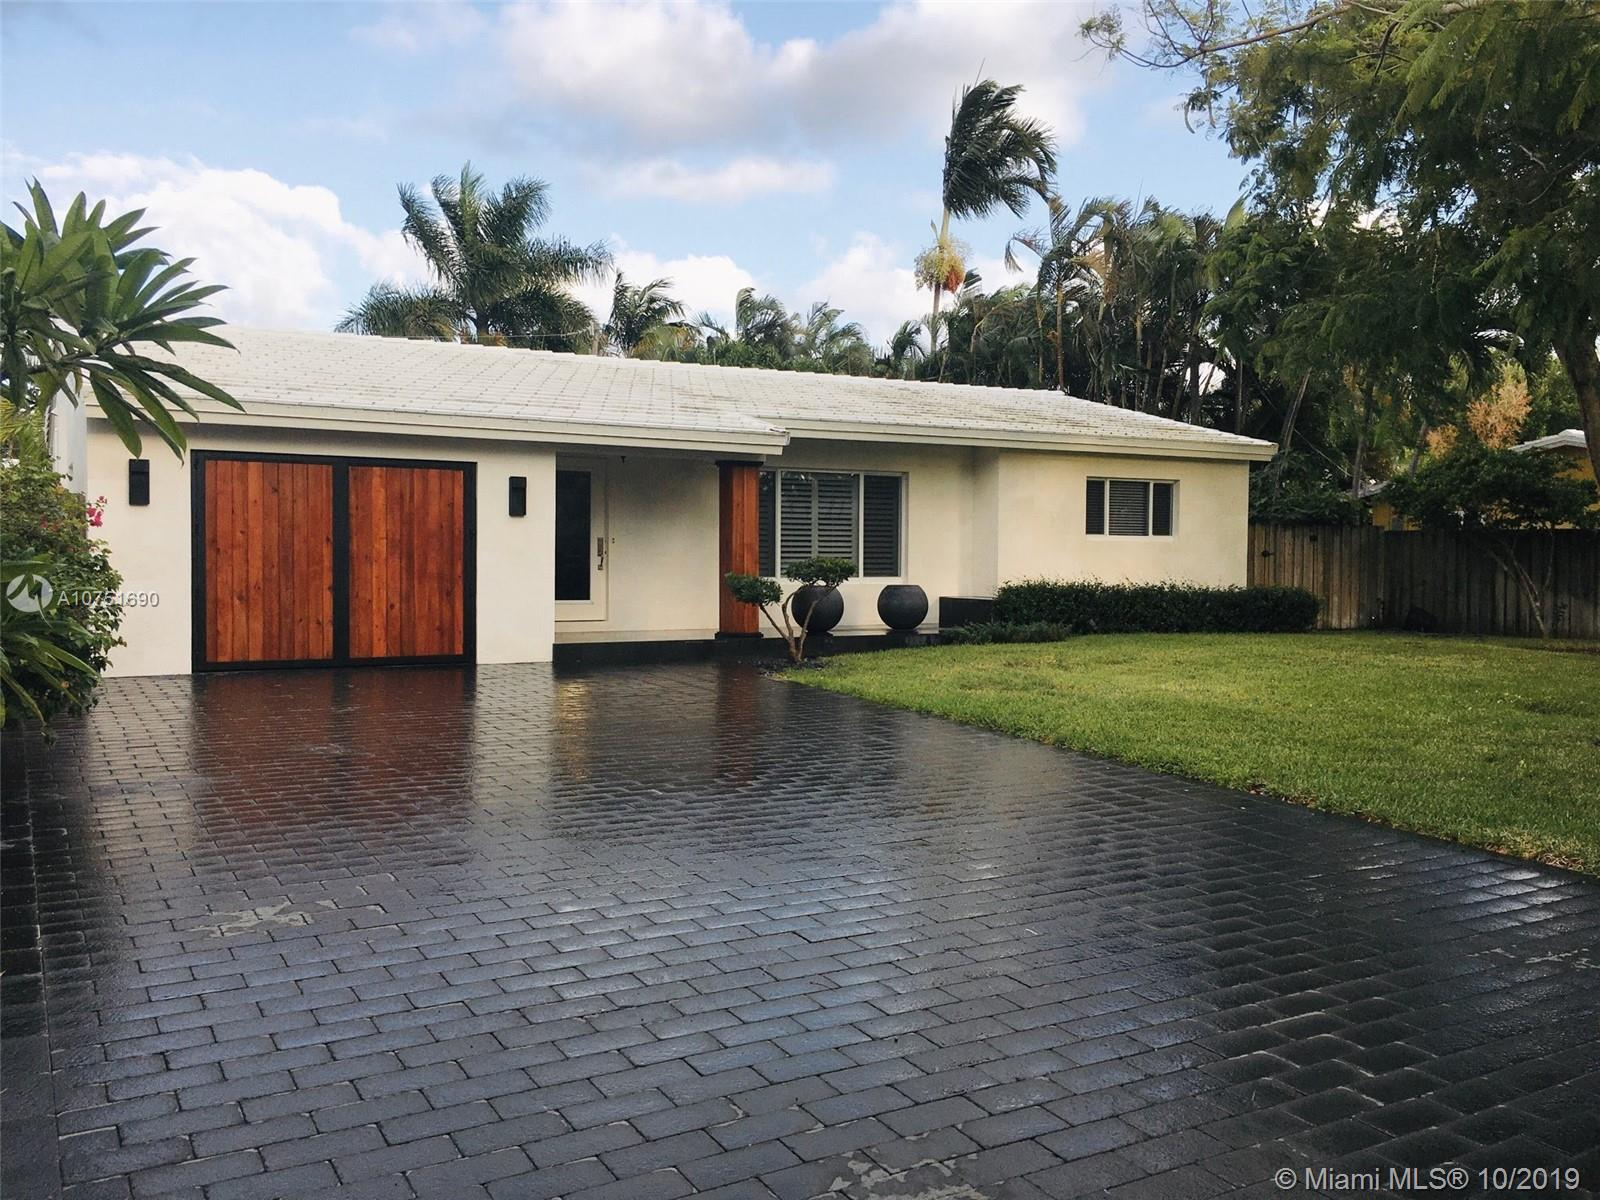 Move in ready! Newly renovated single family in perfect Wilton Manors. Prettiest house on the block. Great for a those looking for a worry free Wilton Manors oasis. Invite guests to splash in the pool, lounge in the sun, or enjoy drinks before heading to the strip for dinner. New landscaping includes 18 Japanese blueberry trees, multiple palms, and new sodding. Perfect for privacy. New driveway, new marble facade, new solid wood garage doors. New AC for reduced electricity usage. Resort style pool area with 40ft pool. (Home is on one of the larger lots in the neighborhood). Renovated Kitchen and bath. Continuous marble flooring throughout. Spacious garage. Each bedroom can fit a kingsized bed. Opportunities for customization and expansion.Make your Wilton Manors dreams come true!